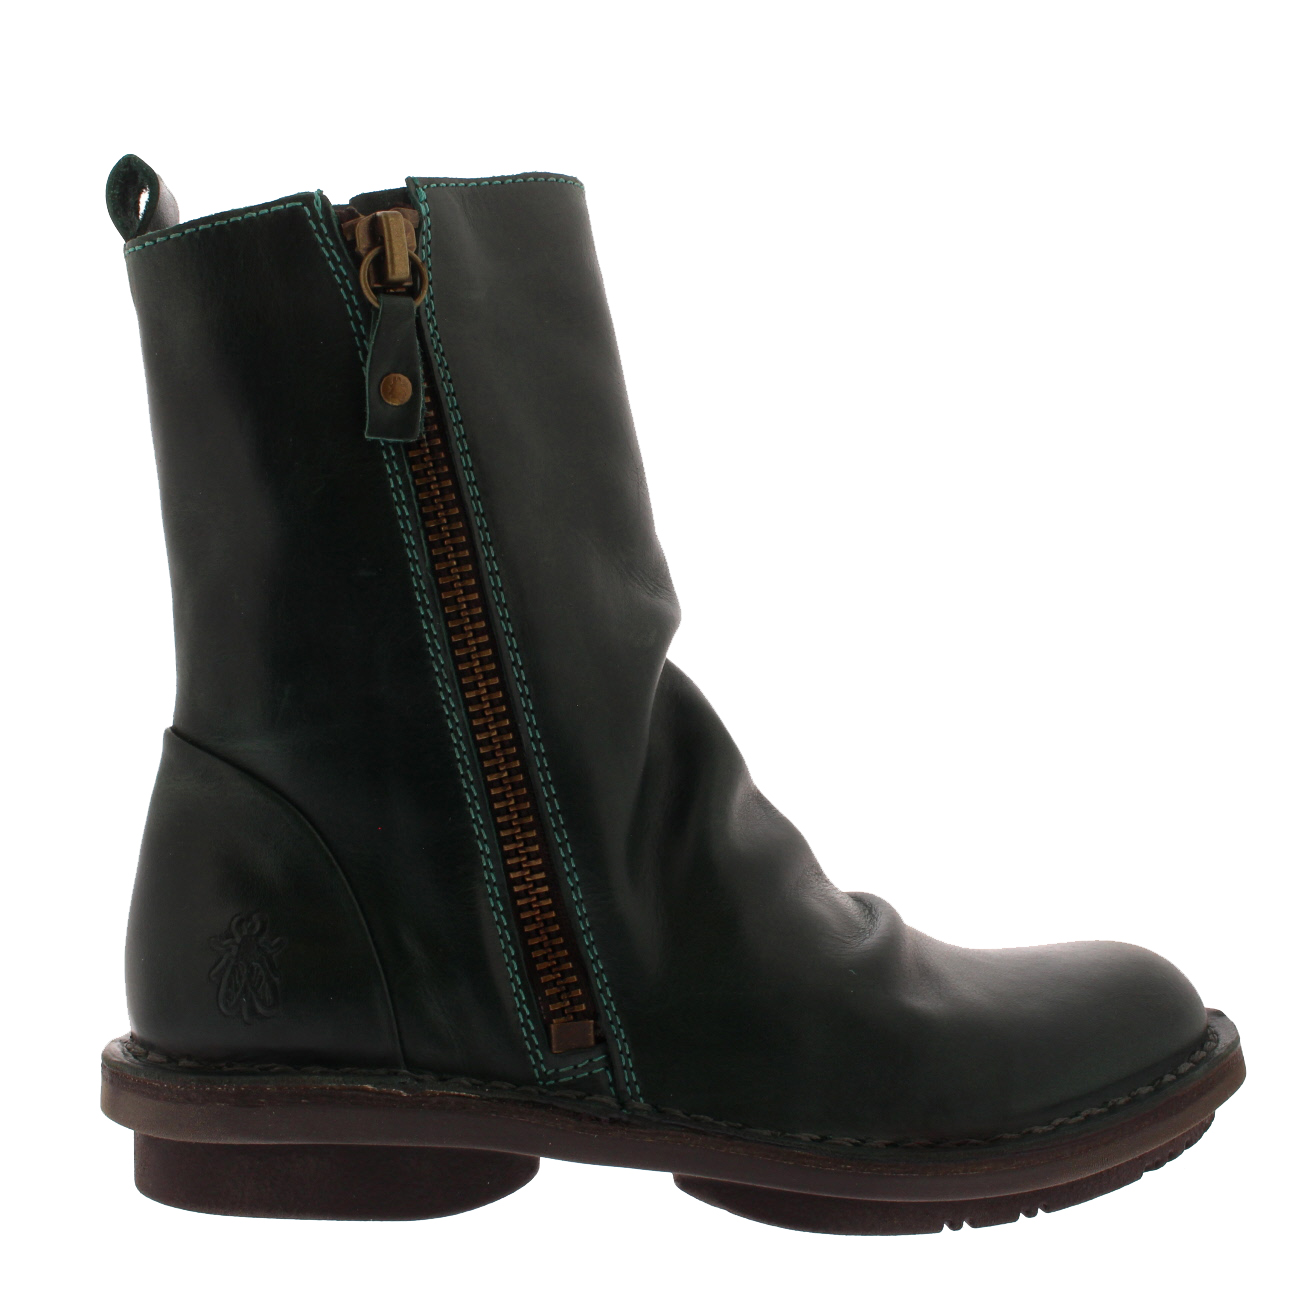 751088e96ff11 Womens Fly London Fade Work Winter Fashion Slouch Leather Ankle ...